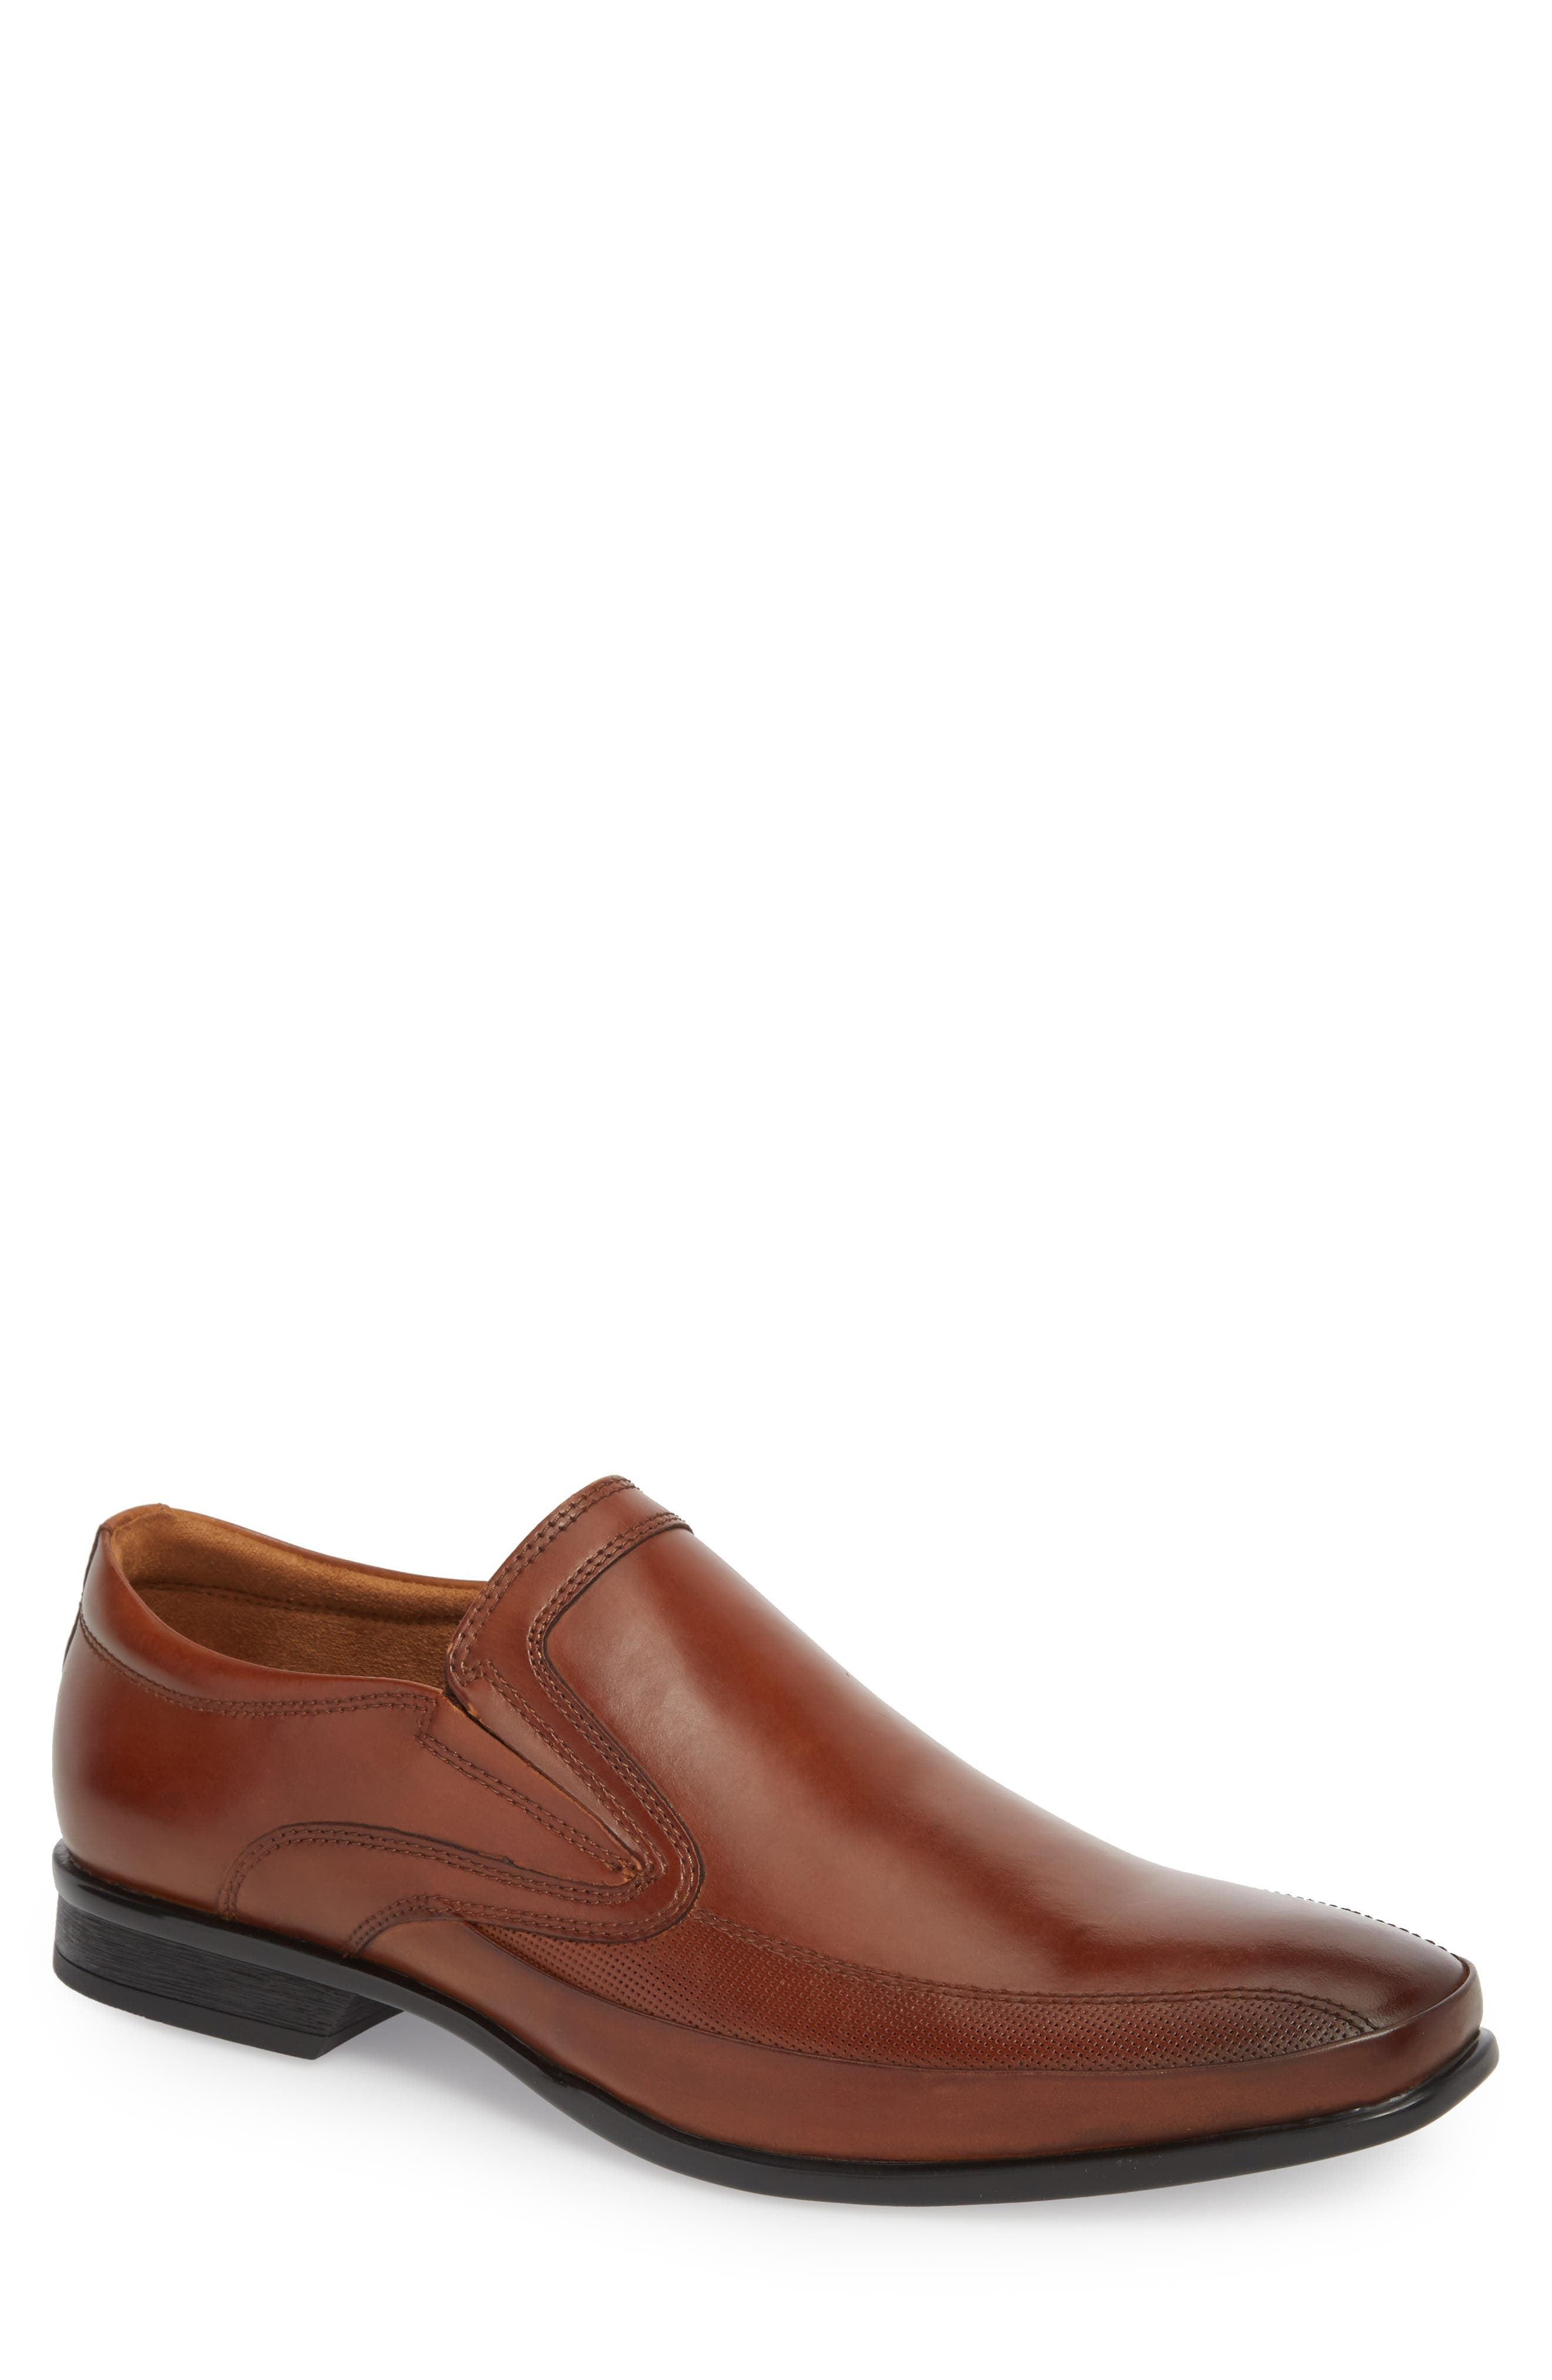 'Extra Official' Venetian Loafer,                             Main thumbnail 1, color,                             Cognac Leather